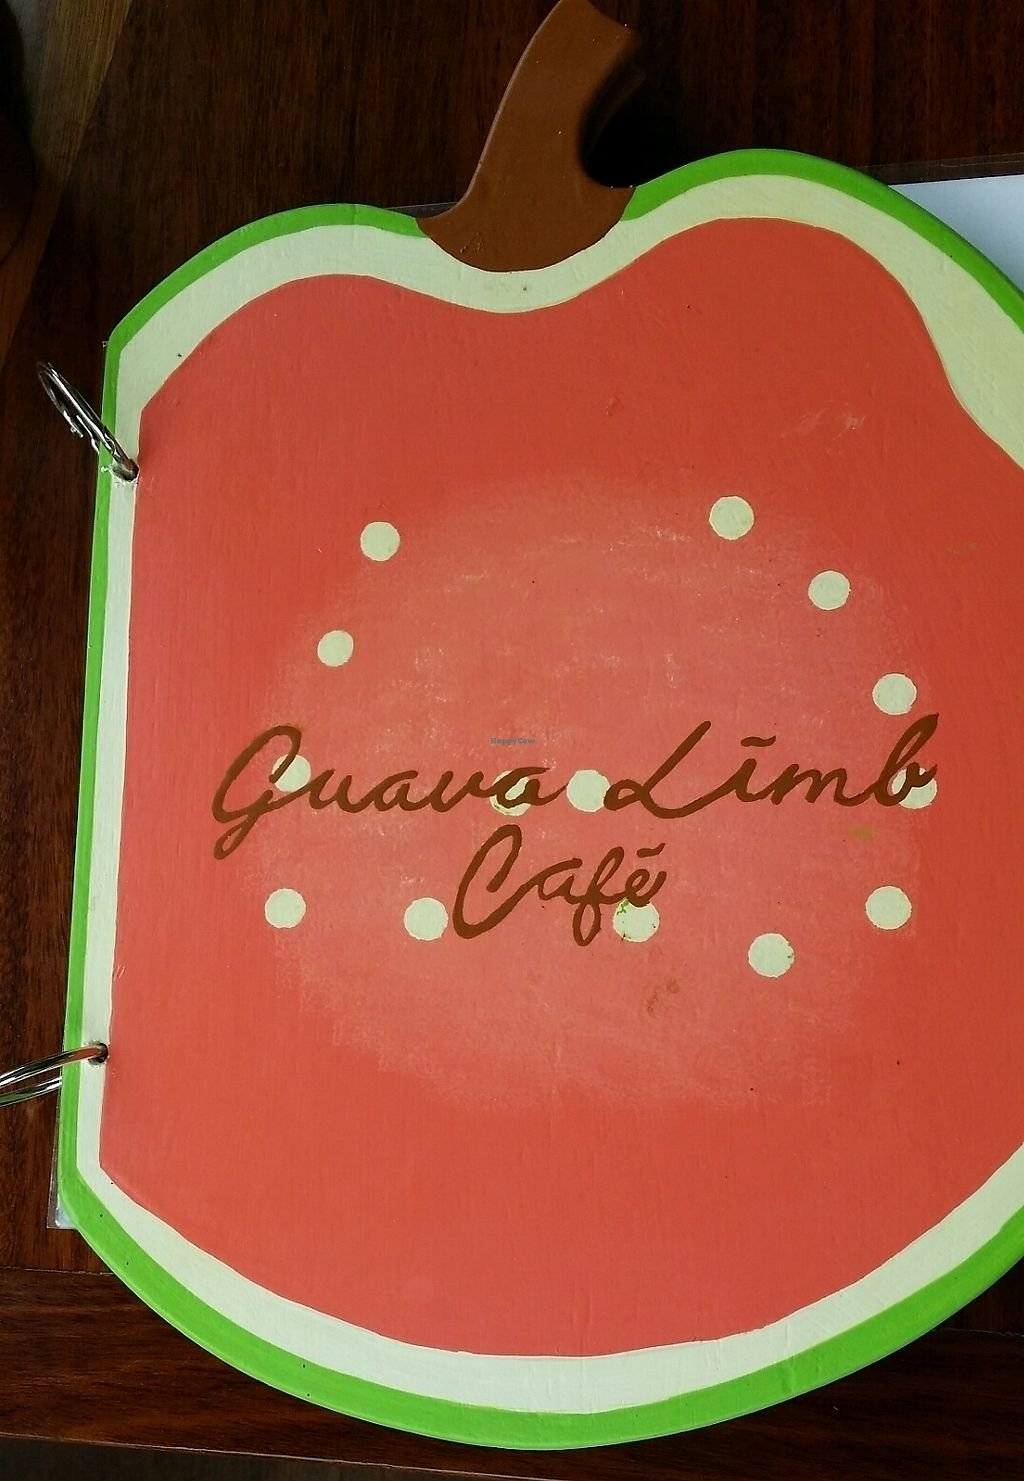 """Photo of The Guava Limb Restaurant & Cafe  by <a href=""""/members/profile/mmuqtasid"""">mmuqtasid</a> <br/>The menu <br/> July 3, 2017  - <a href='/contact/abuse/image/95012/276211'>Report</a>"""